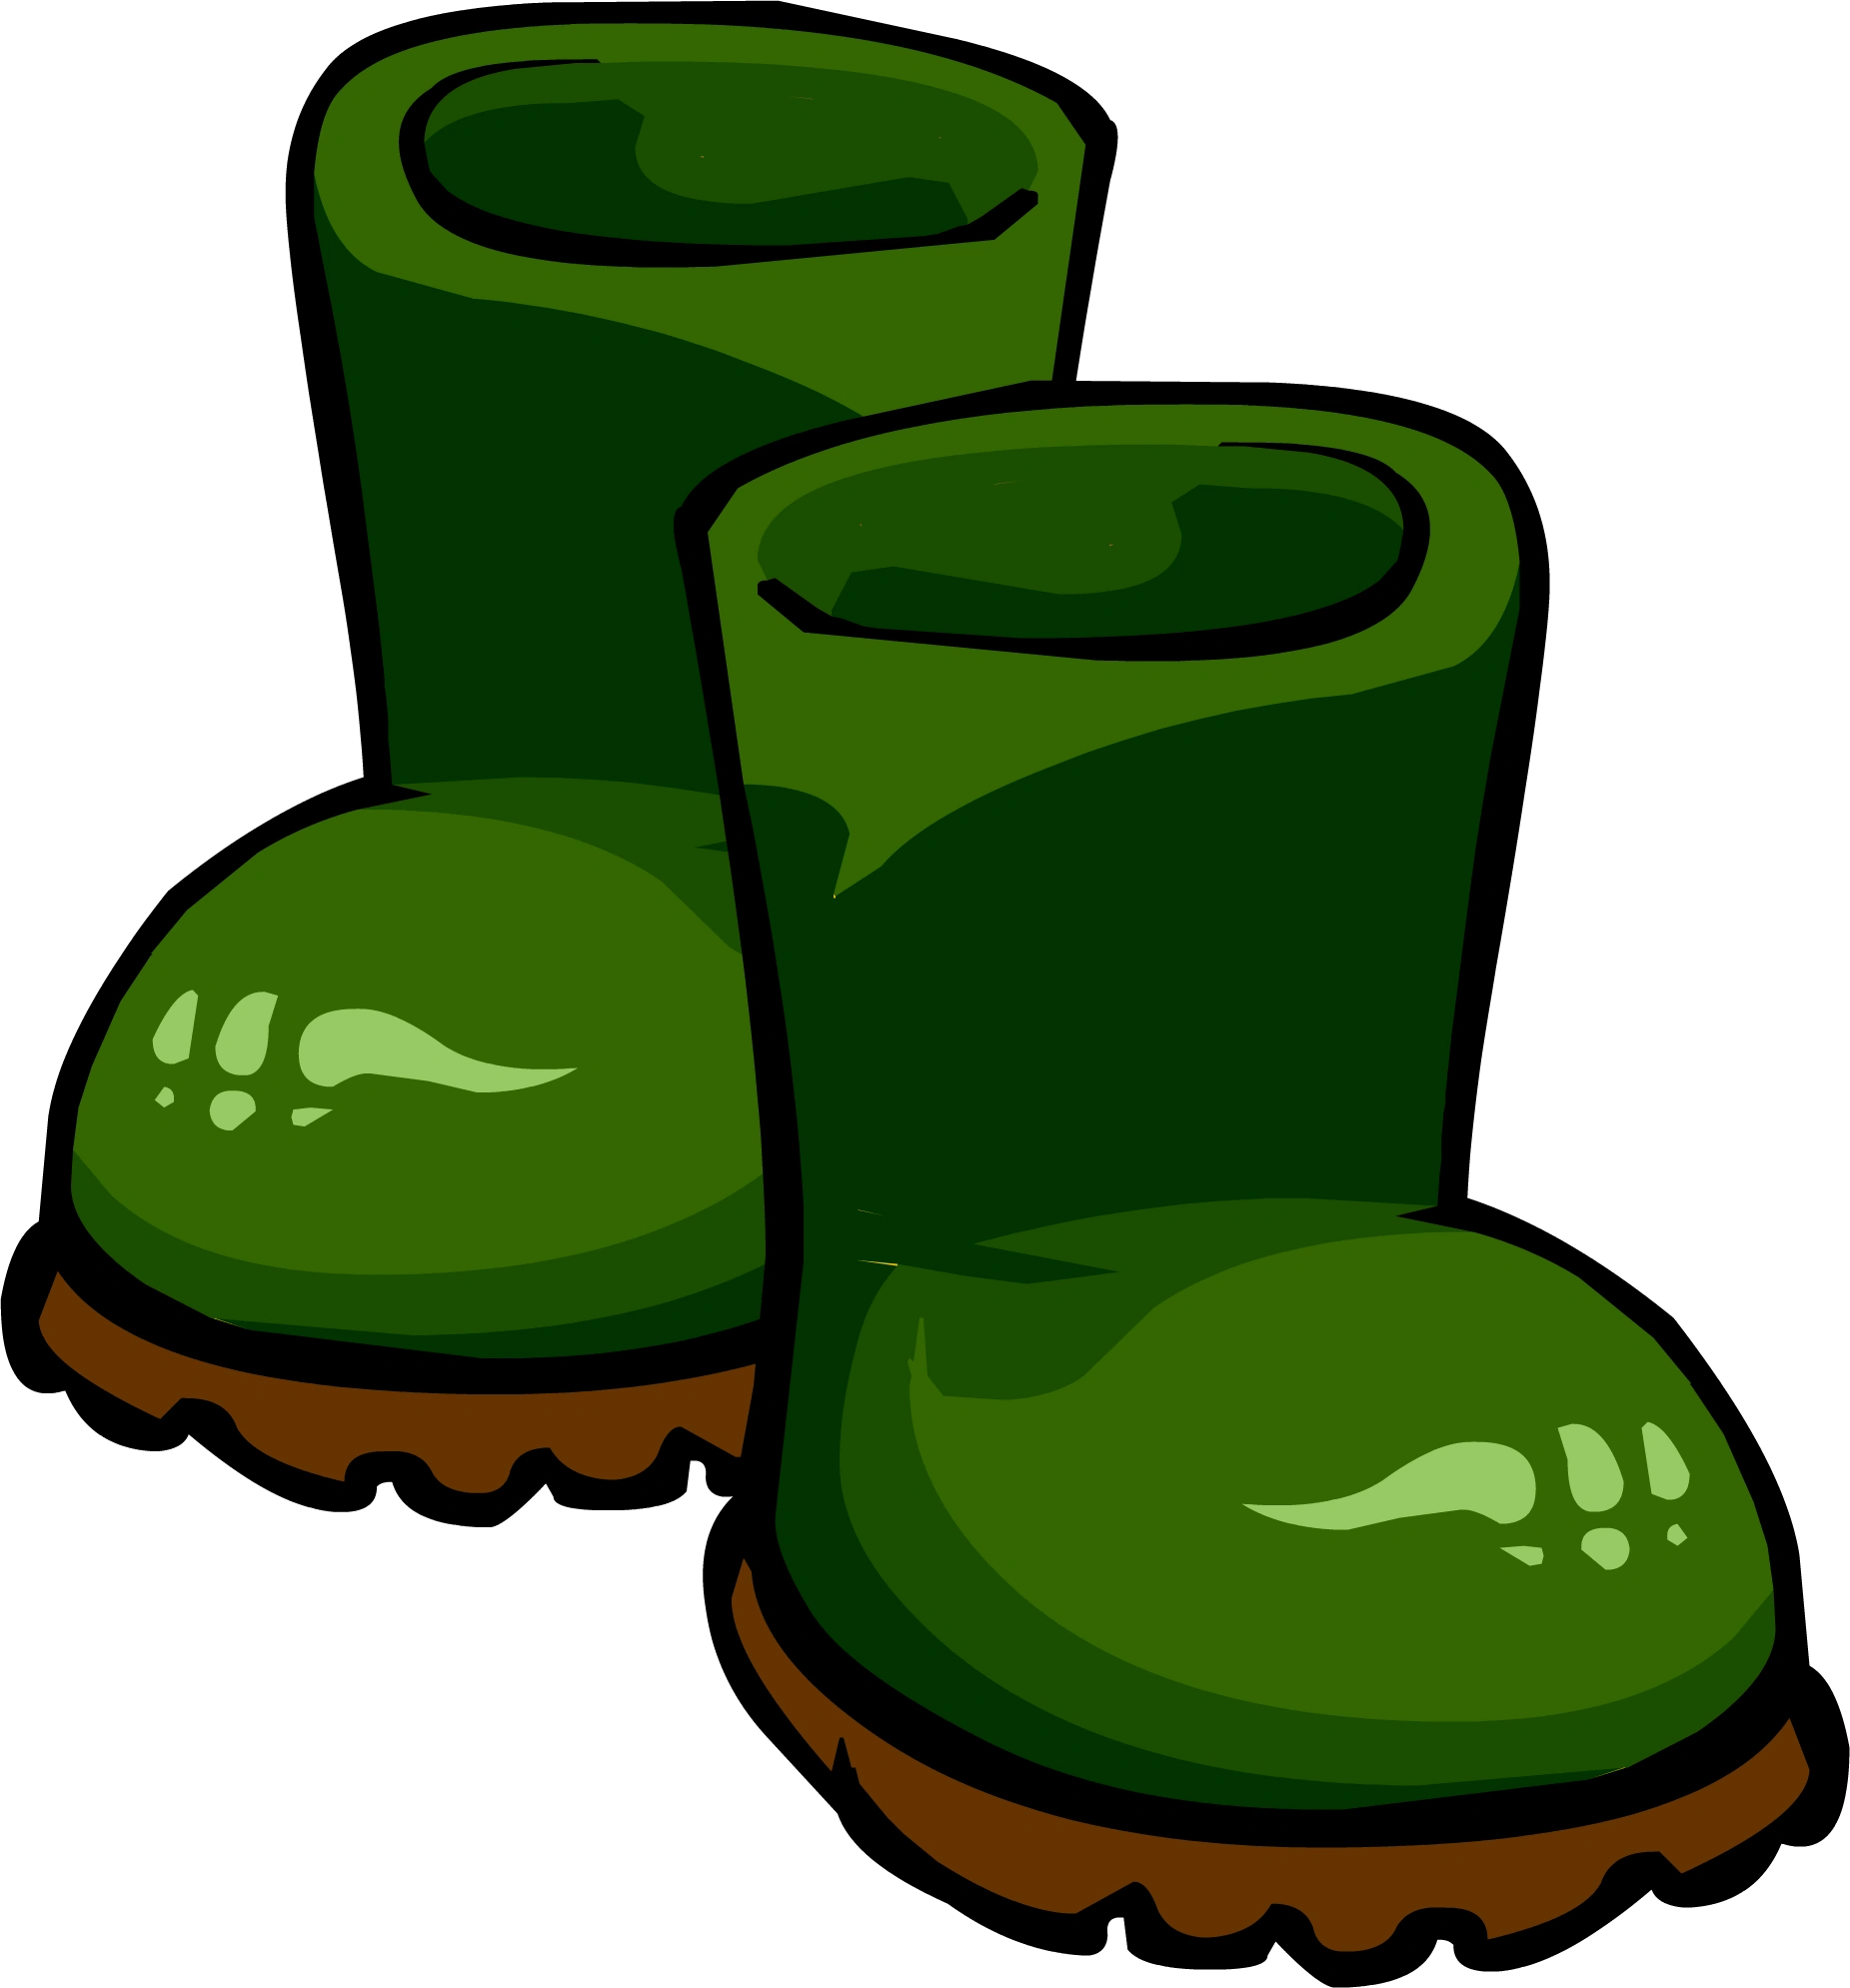 Green Rubber Boots  Club Penguin Wiki  FANDOM powered by